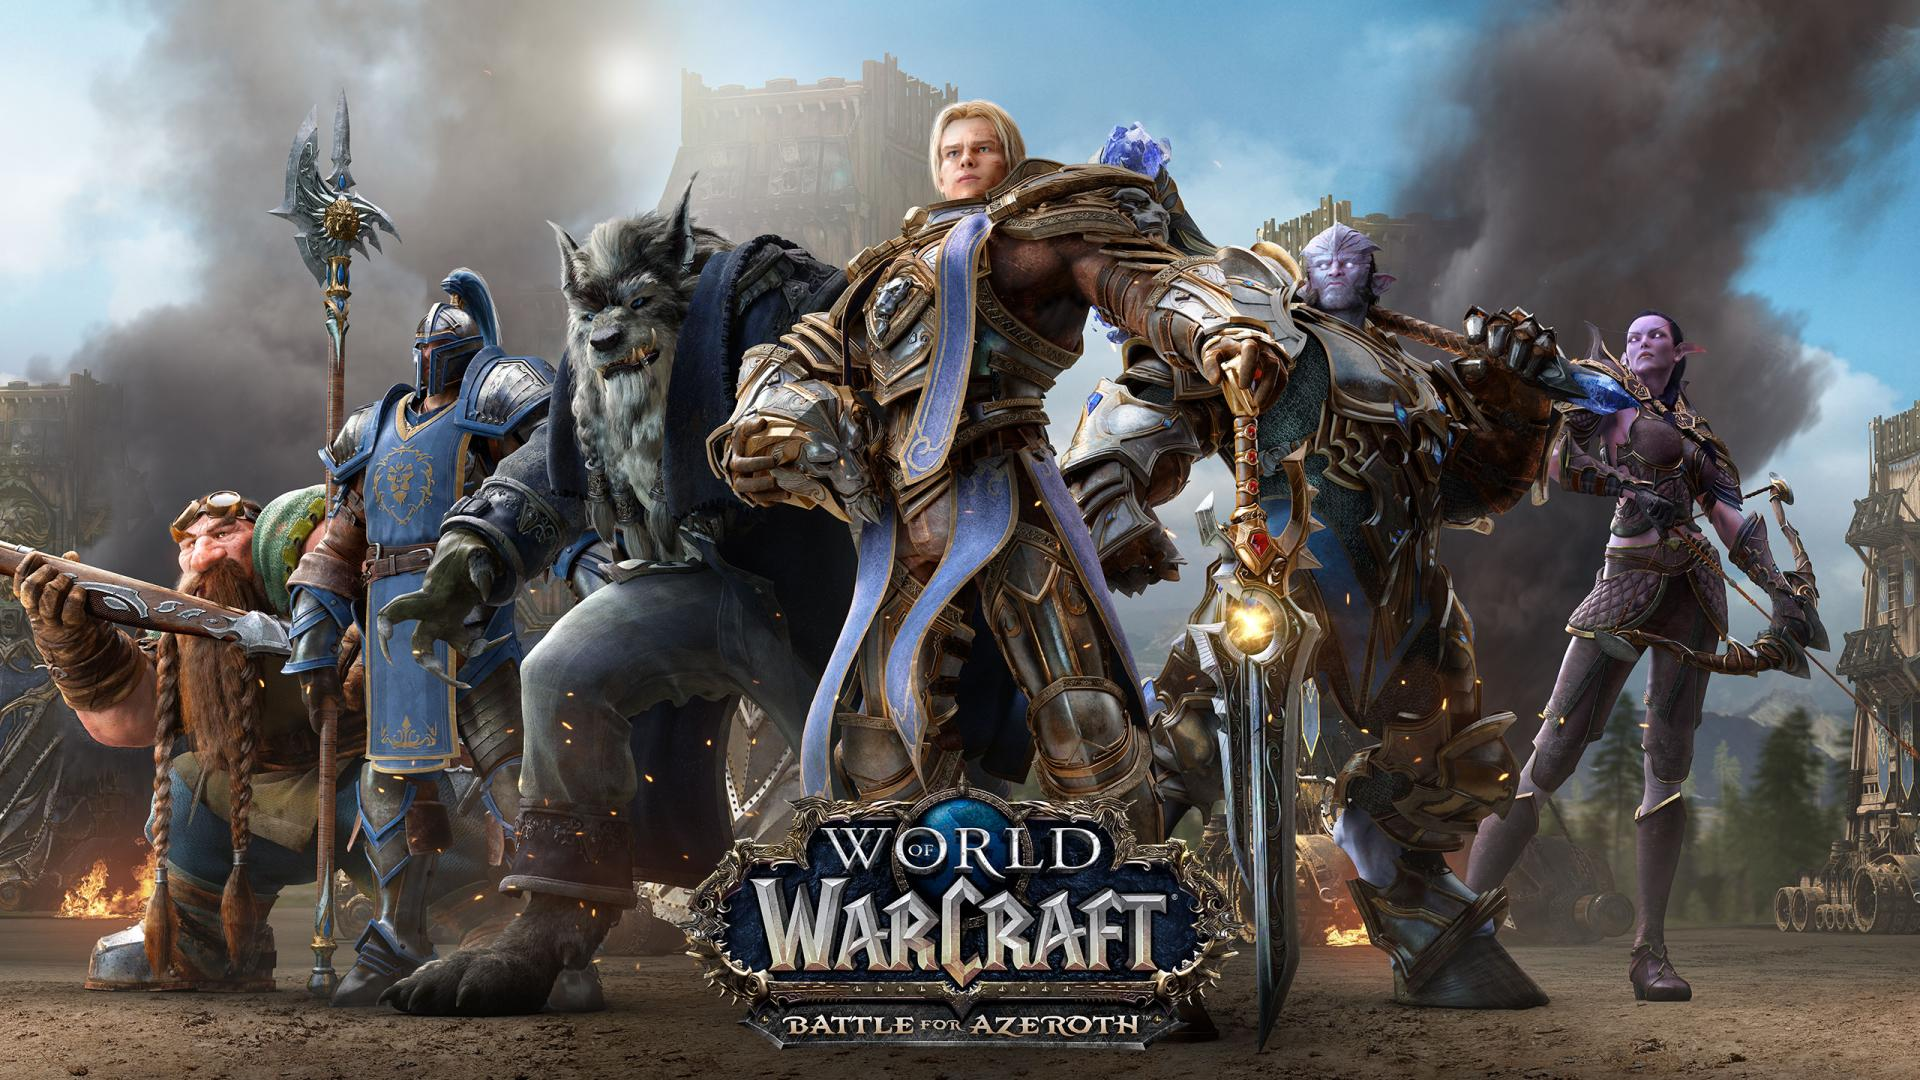 World of Warcraft WoW Battle for Azeroth MMOs Go To the Movies: Ticket Business Model and the Lifespan of an MMORPG